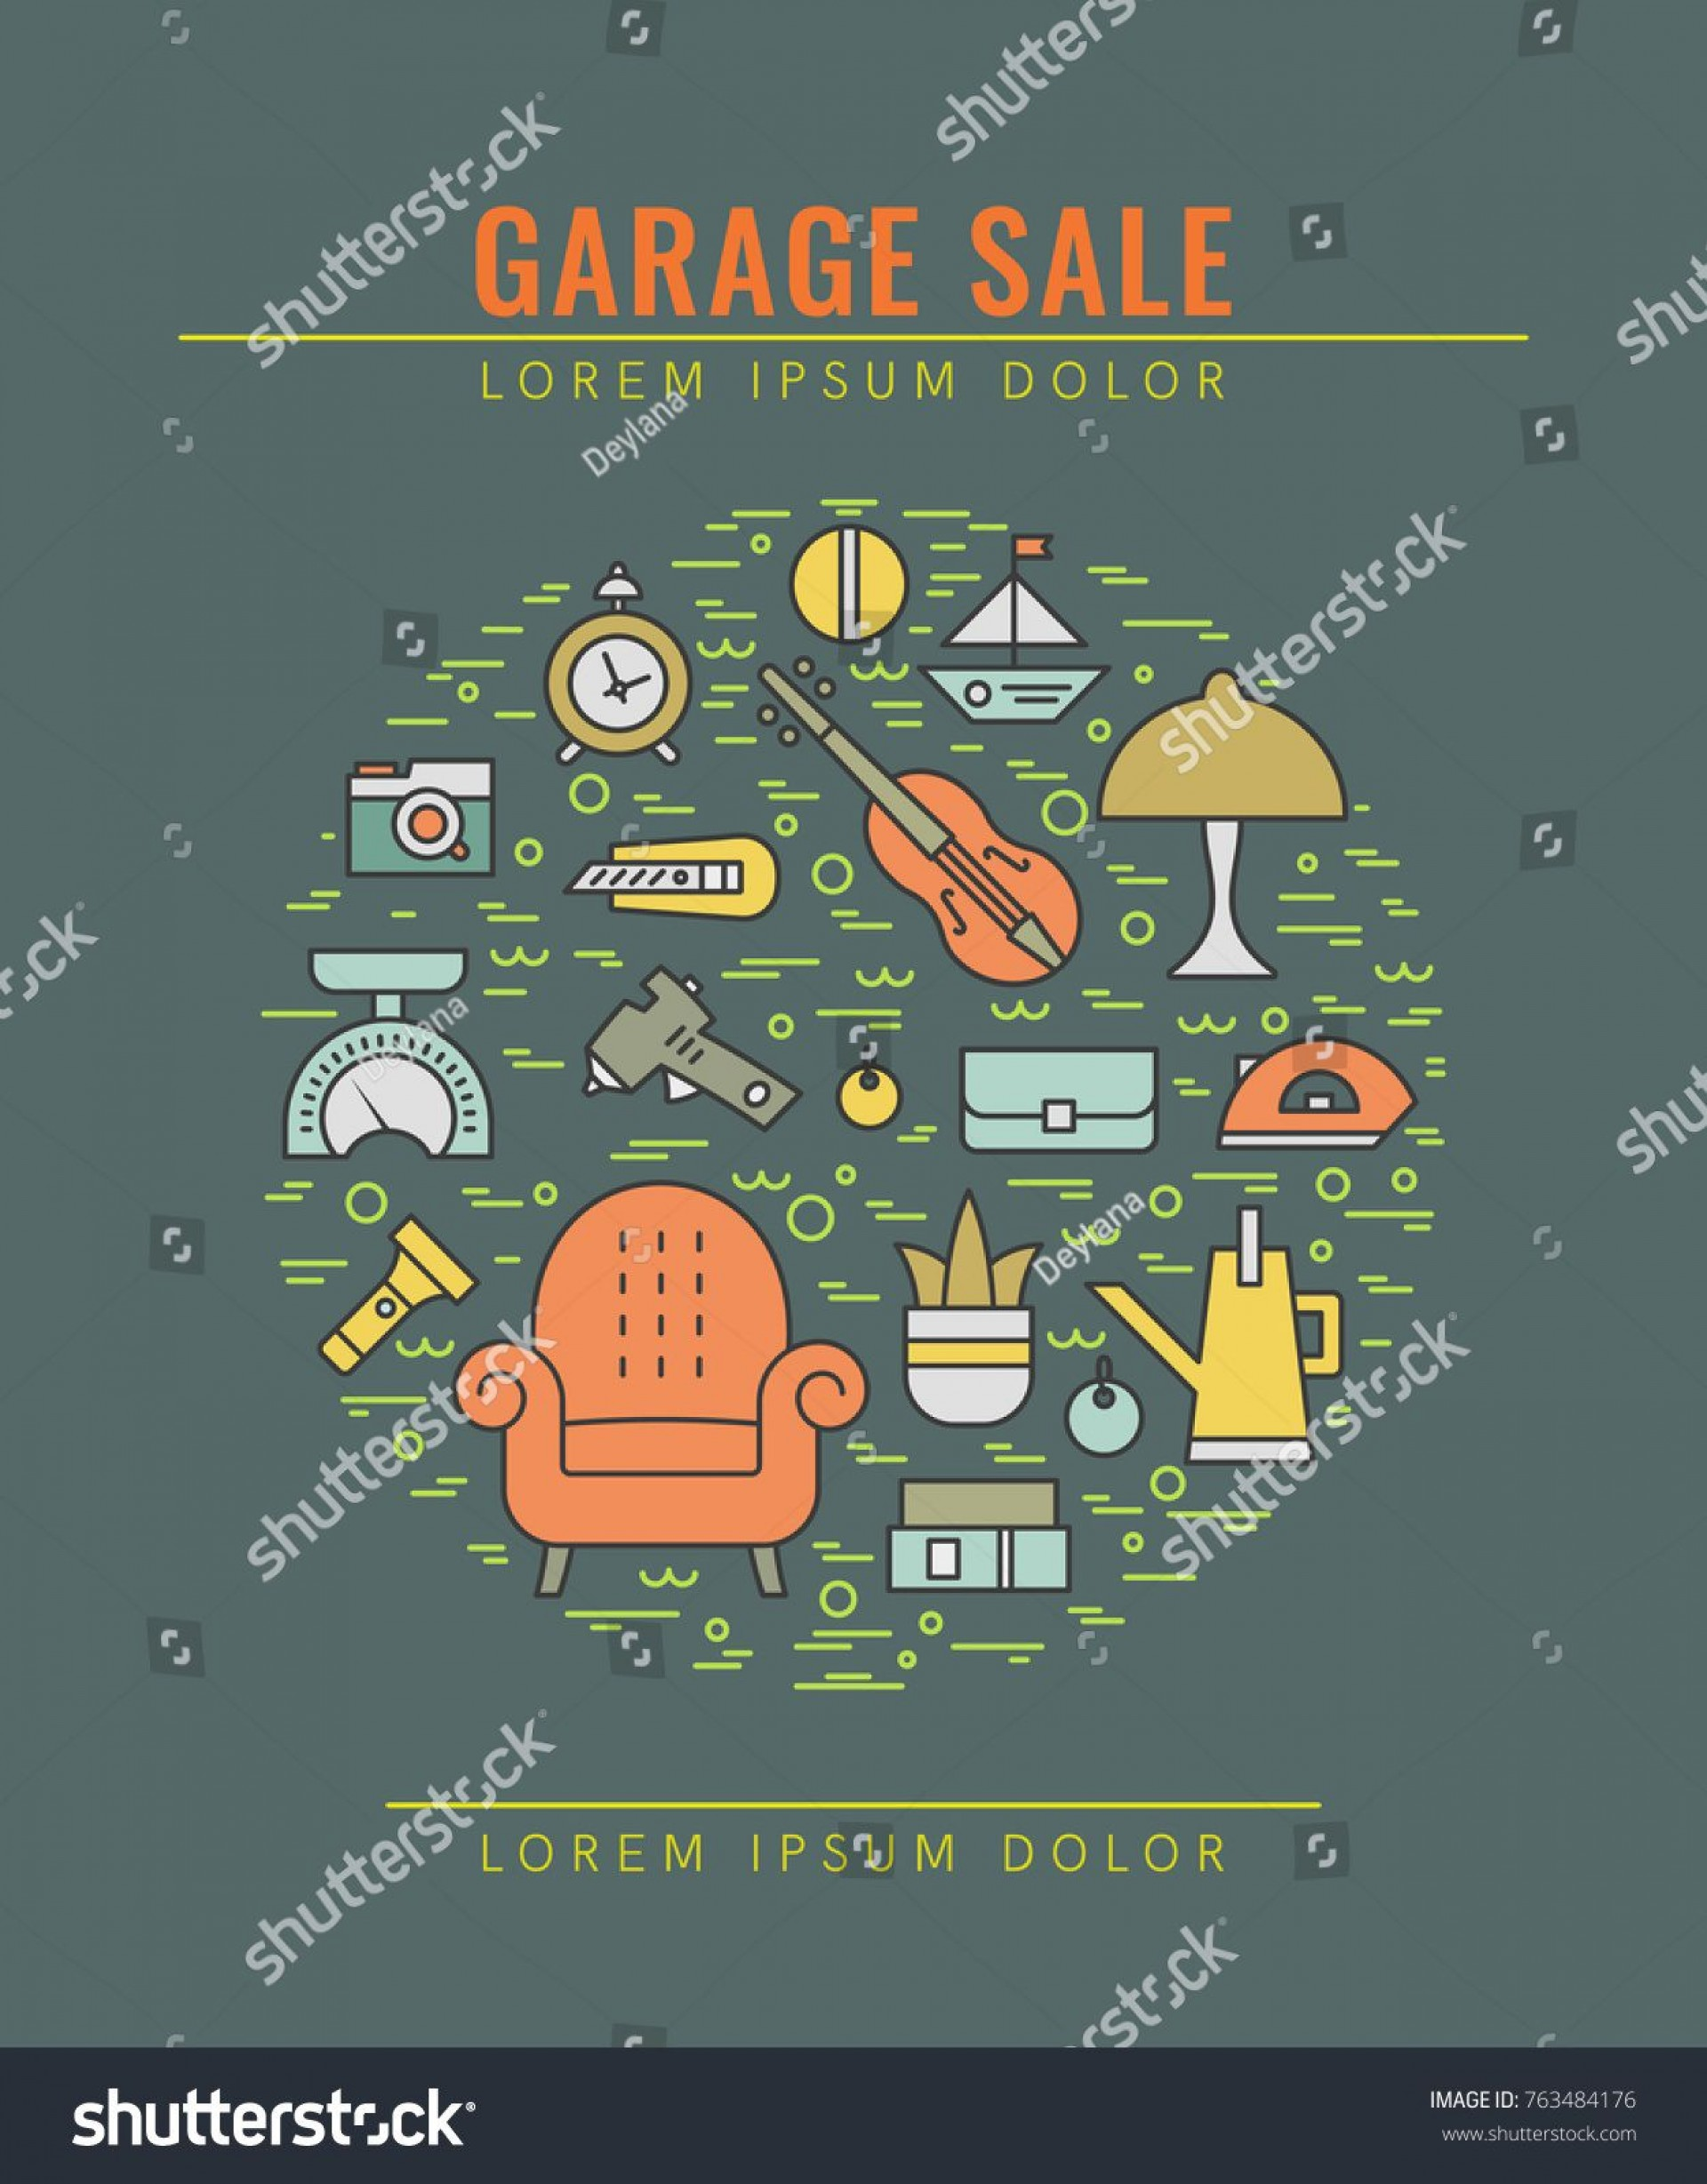 008 Impressive Yard Sale Flyer Template Concept  Ad Sample Microsoft Word Garage Free1920